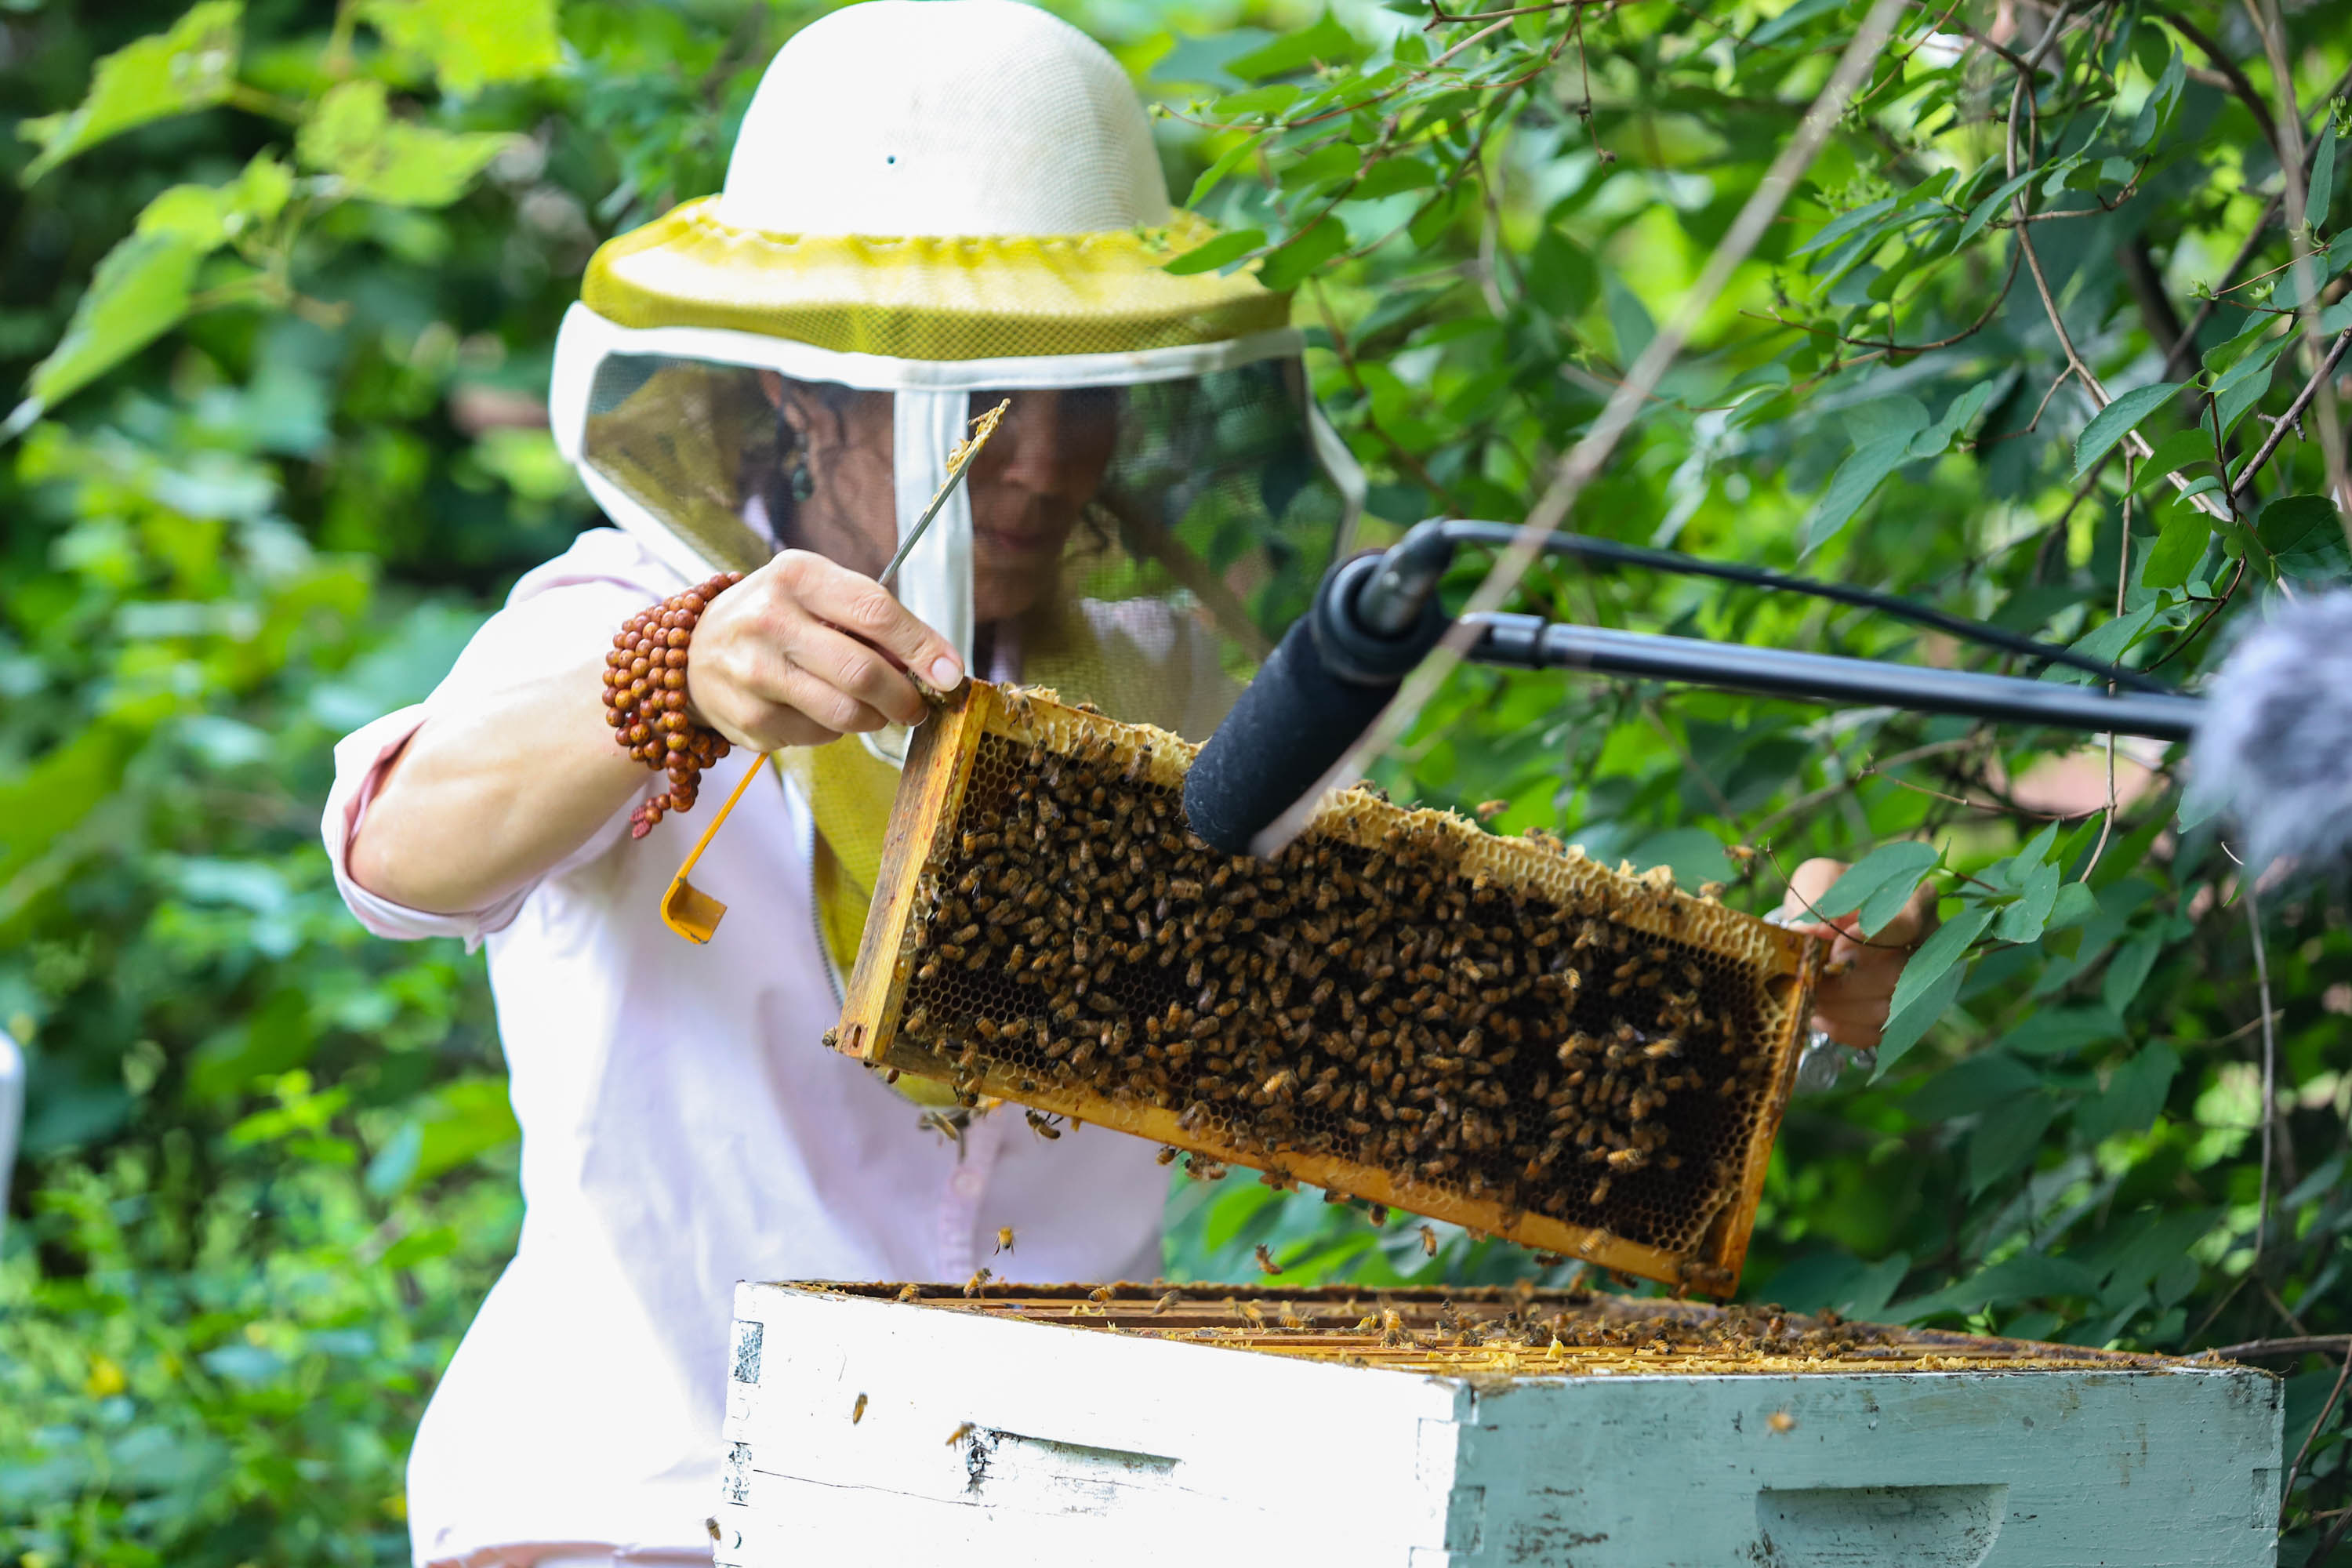 Heather holds up a single frame of the hive. While she could harvest more, she only takes the honey from 4-5 frames at a time, leaving the rest for the bees. That works out to around 25 pounds of honey. <em>Shannon Henry Kleiber&nbsp;(TTBOOK)</em>